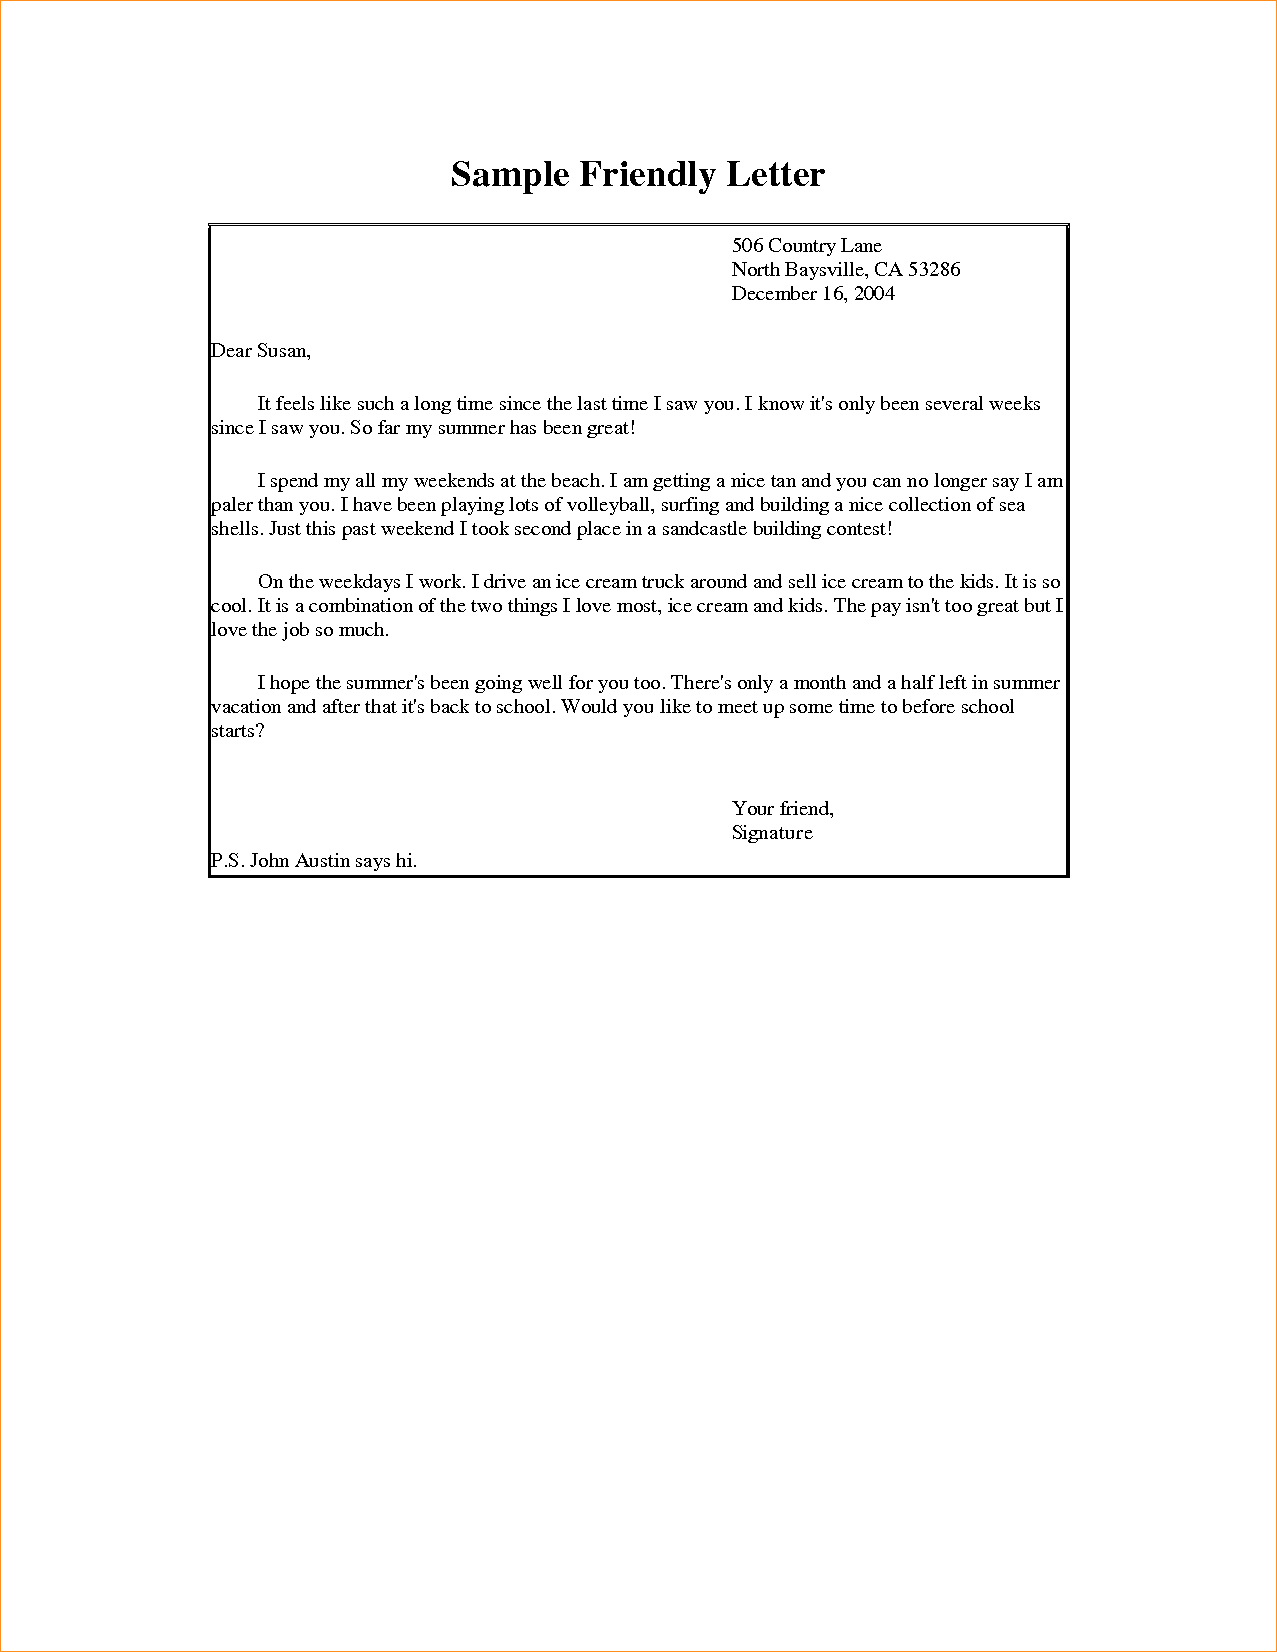 Friendly Letter Format Business Proposal Templated Kids  Home